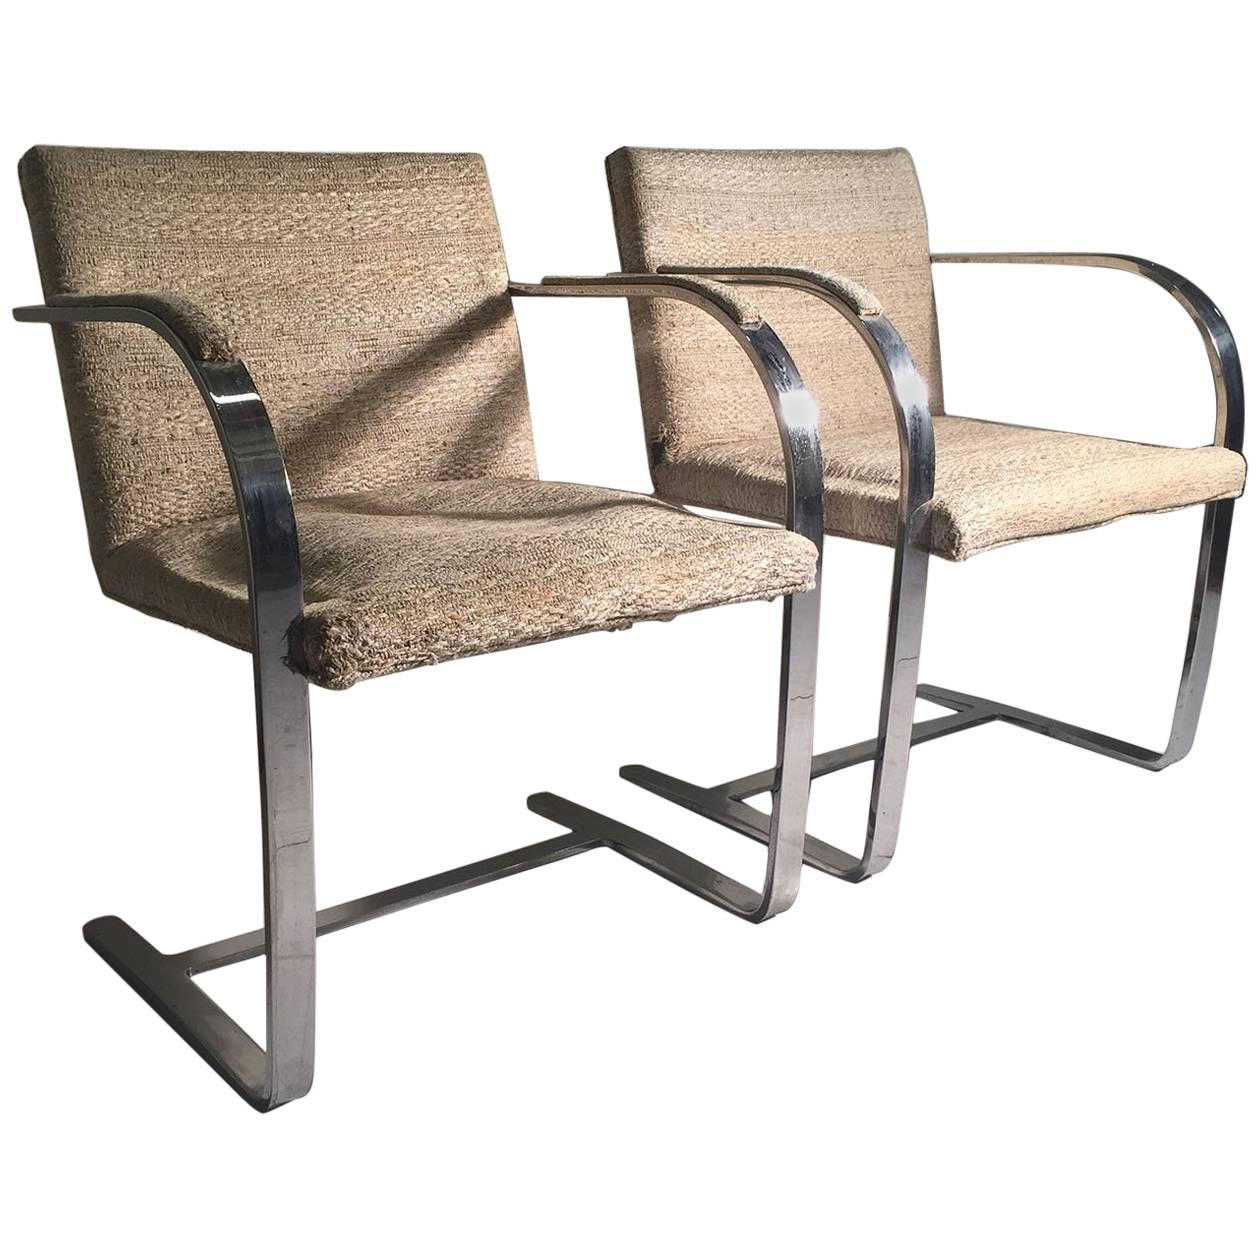 Pair Of Vintage Mies Van Der Rohe Knoll Brno Chairs For Sale